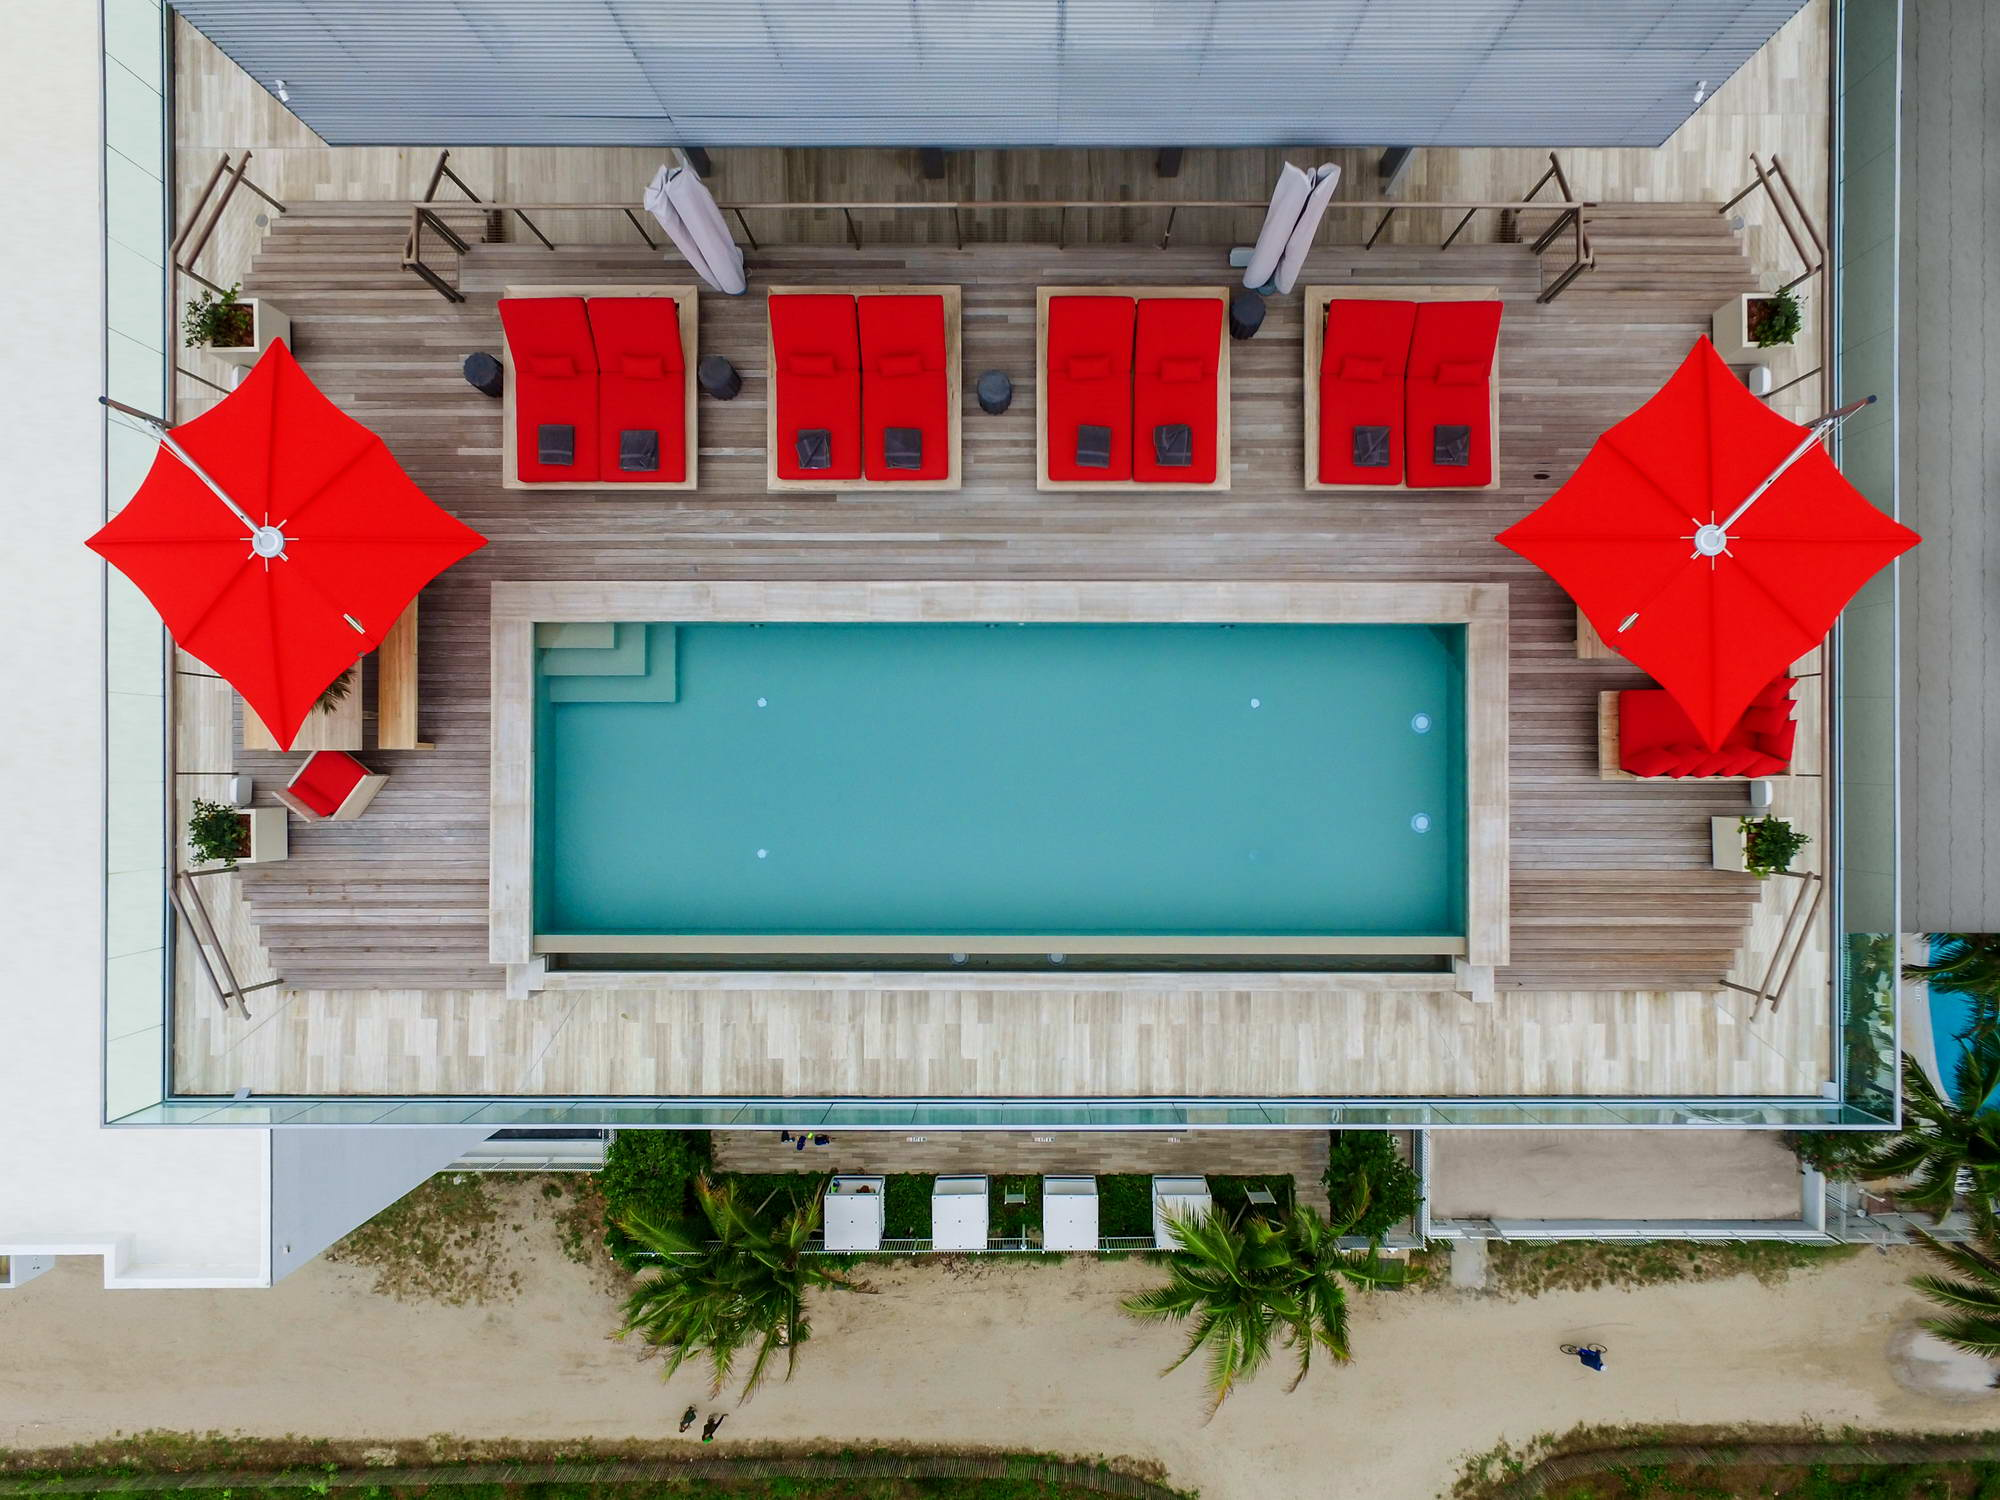 Ocean penthouse beach view south beach Miami Florida contemporary apartment aerial exterior infinity pool lounge chairs terrace deck roof